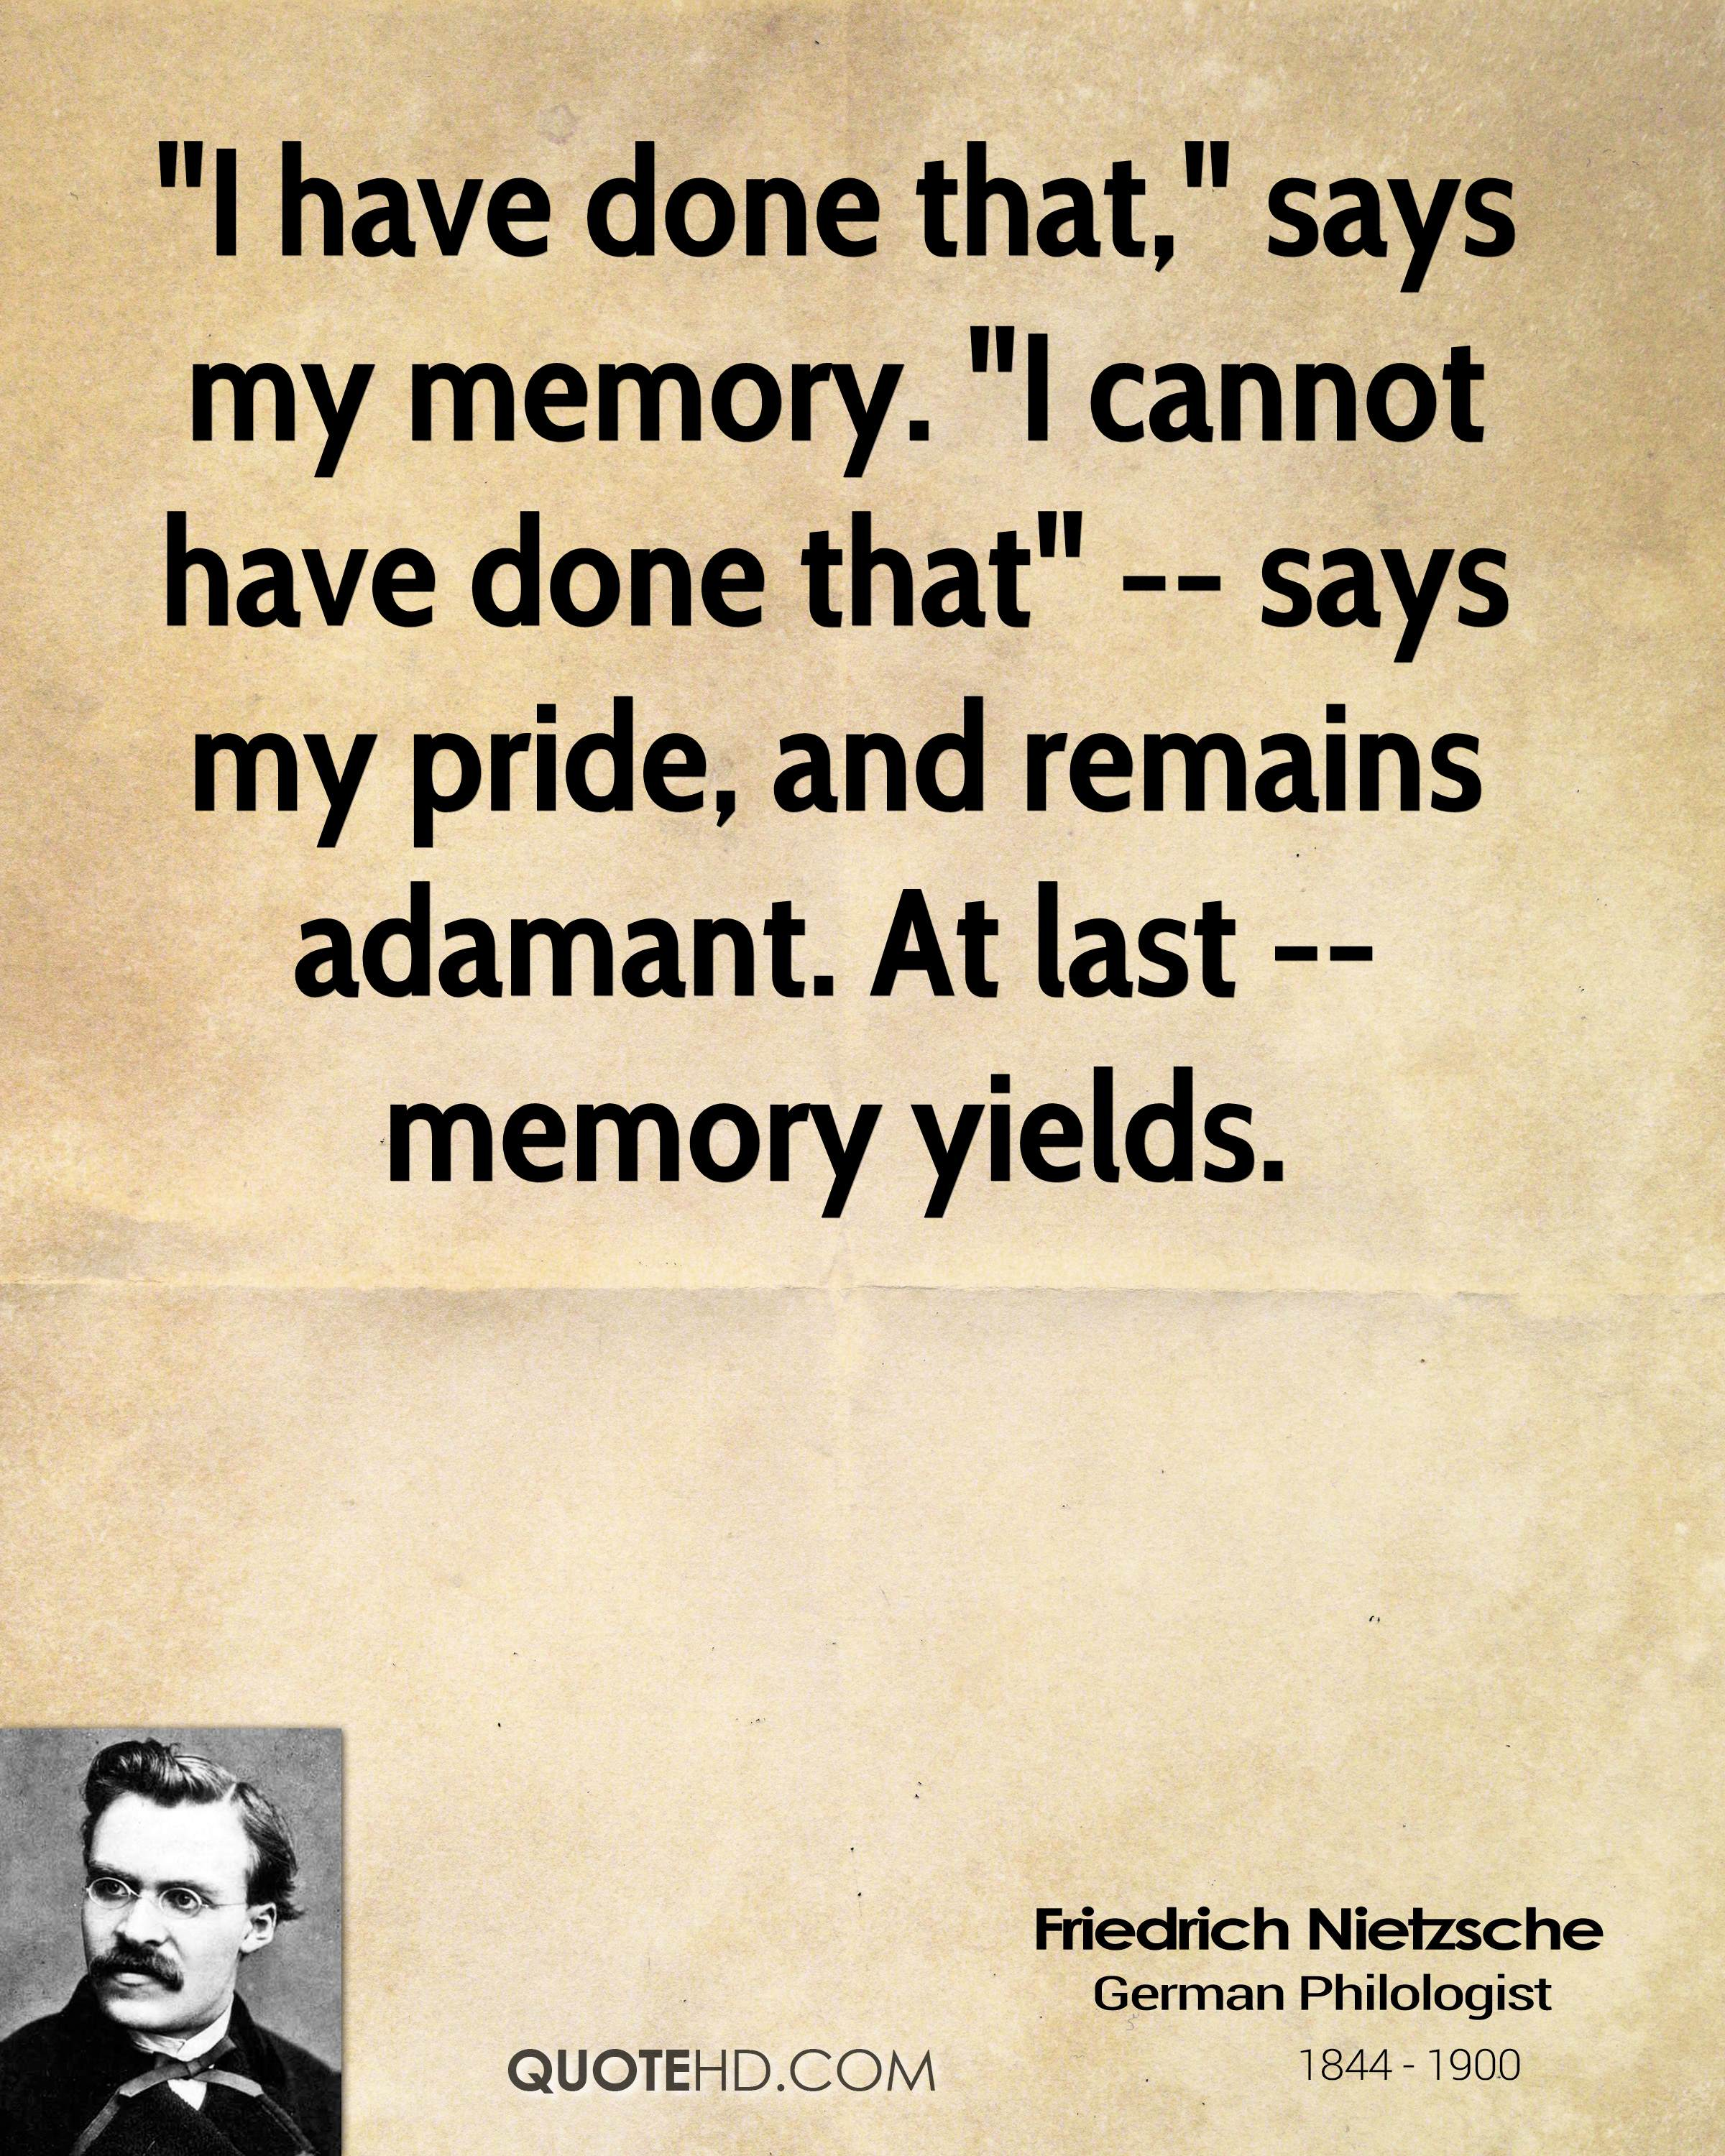 """""""I have done that,"""" says my memory. """"I cannot have done that"""" -- says my pride, and remains adamant. At last -- memory yields."""